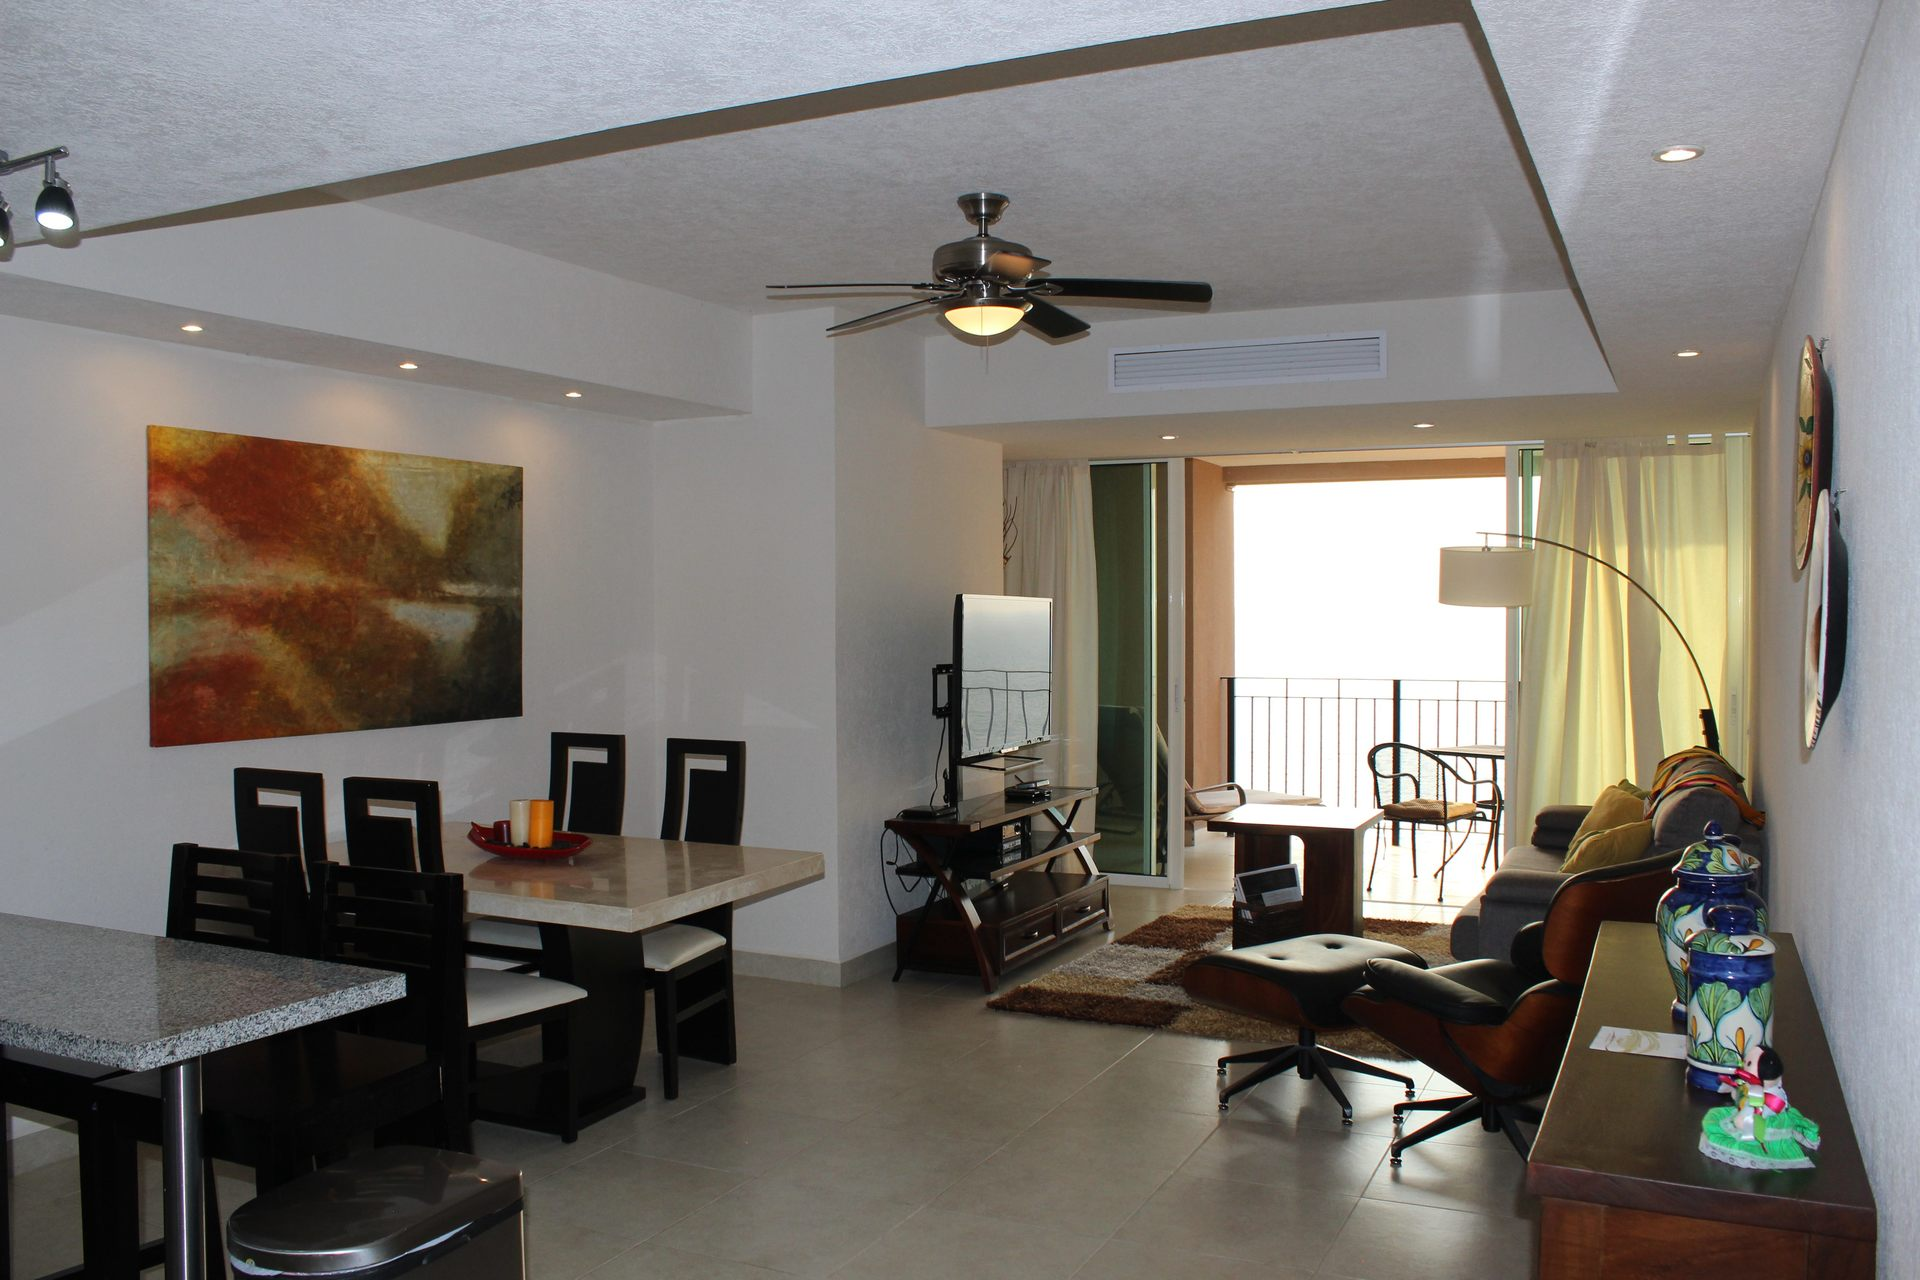 Cozy 1 bedroom beachfront vacation condo studio rental in Grand Venetian Puerto Vallarta